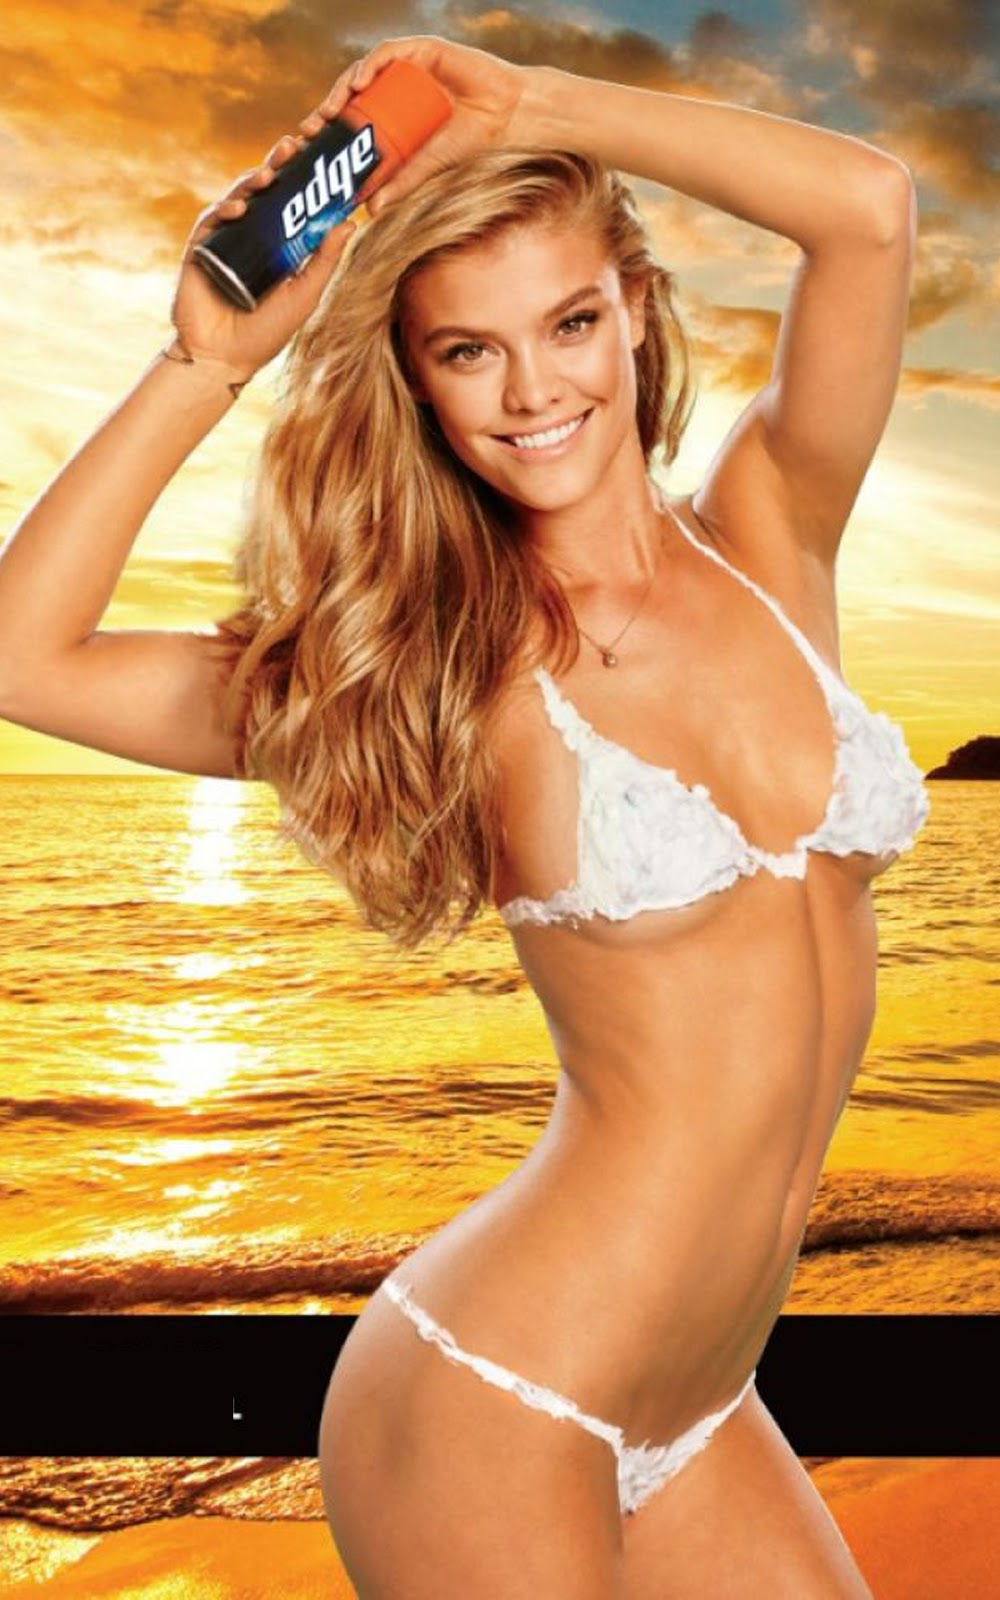 "Nina Agdal  Nina Agdal Born  26 March 1992 (age 21) Denmark Modeling information Height 1.76 m (5 ft 9 in) Weight 55 kg Hair color Light Brown Eye color Green / Grey Measurements (US) 34-23.5-34.5 ; (EU) 82-60-90 Dress size (US) 6 ; (EU) 36 Nina Agdal (born 26 March 1992) is a Danish fashion model. She is best known for being a Sports Illustrated Model.  Career in Fashion and Modeling  Agdal, who grew up in Hillerod, Denmark, has modeled for Billabong, Macy's, Frederick's of Hollywood, and Victoria's Secret. In 2012, she made her first appearance in the Sports Illustrated Swimsuit Issue and was subsequently named the issue's ""Rookie of the Year."" Agdal appeared in a 2013 Super Bowl television commercial for Carl's Jr./Hardee's, following in the footsteps of Kim Kardashian, Padma Lakshmi, Paris Hilton and fellow Sports Illustrated Swimsuit Issue model Kate Upton. The Super Bowl ad was featured in the 2013 film Don Jon.  Personal Life  She is dating Max George of The Wanted since October 2013.   References  a b c d e ""Nina Agdal profile"". Fashion Model Directory. Retrieved 1 February 2013. ""The Rookies Class Of 2012"". Sports Illustrated. Retrieved 1 February 2013. Luciani, Jene. ""Bikini Body Secrets from Sport's Illustrated Model Nina Agdal"". Shape Magazine. Retrieved 1 February 2013. a b Murphy, Meaghan. ""Nina Agdal follows Kate Upton as Carl's Jr., spokesmodel, lands Super Bowl commercial"". Fox News. Retrieved 1 February 2013. Carl's Jr. Releases New Charbroiled Atlantic Cod Fish Sandwich, With Swimsuit Model Nina Agdal (VIDEO)"". The Huffington Post. Retrieved 1 February 2013."